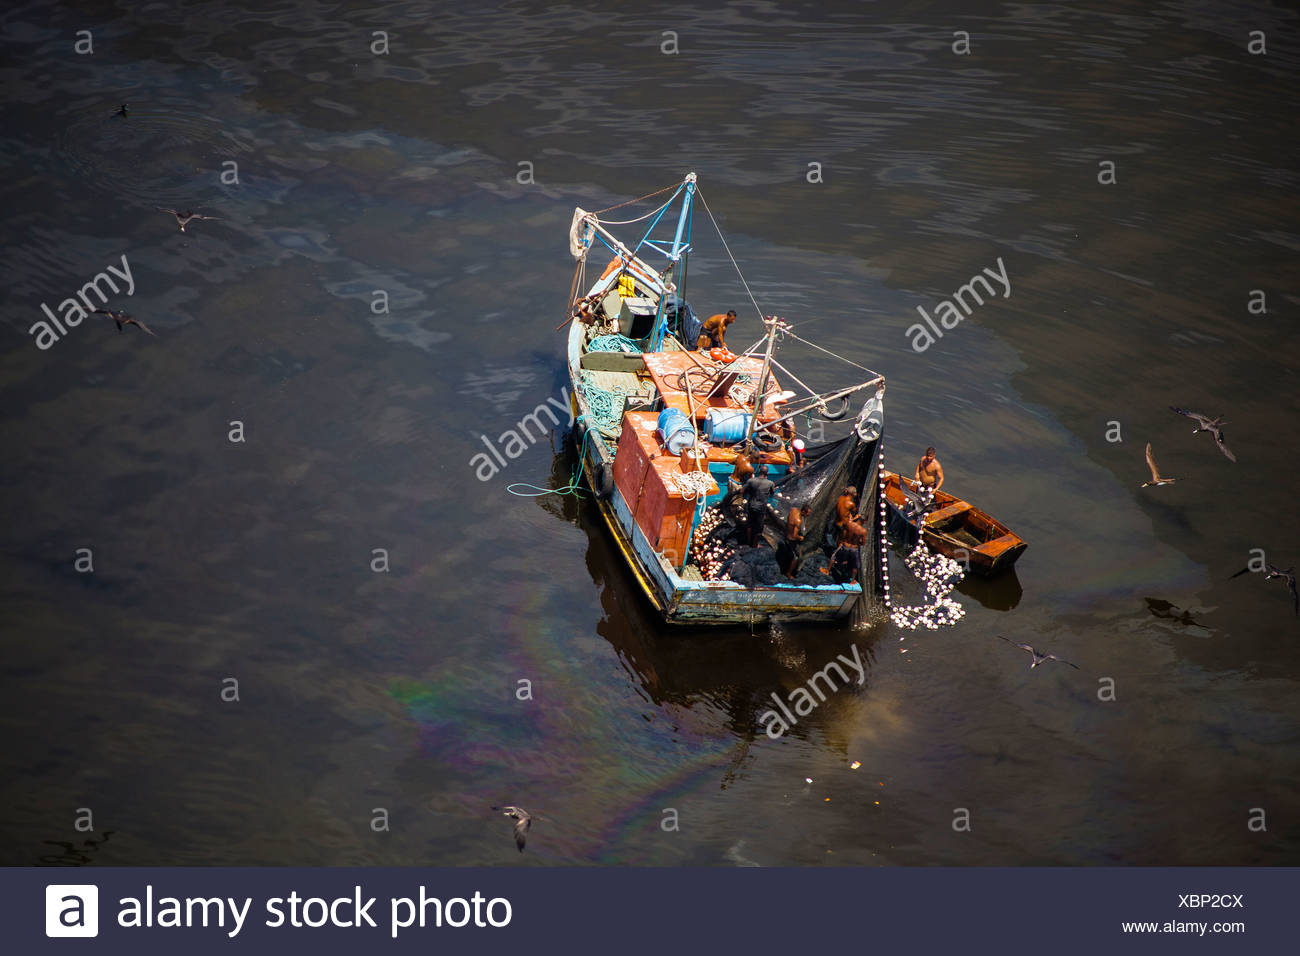 Small fishing boat at the polluted waters of Guanabara Bay, Rio de Janeiro, Brazil. Oil spill near Paqueta island. - Stock Image